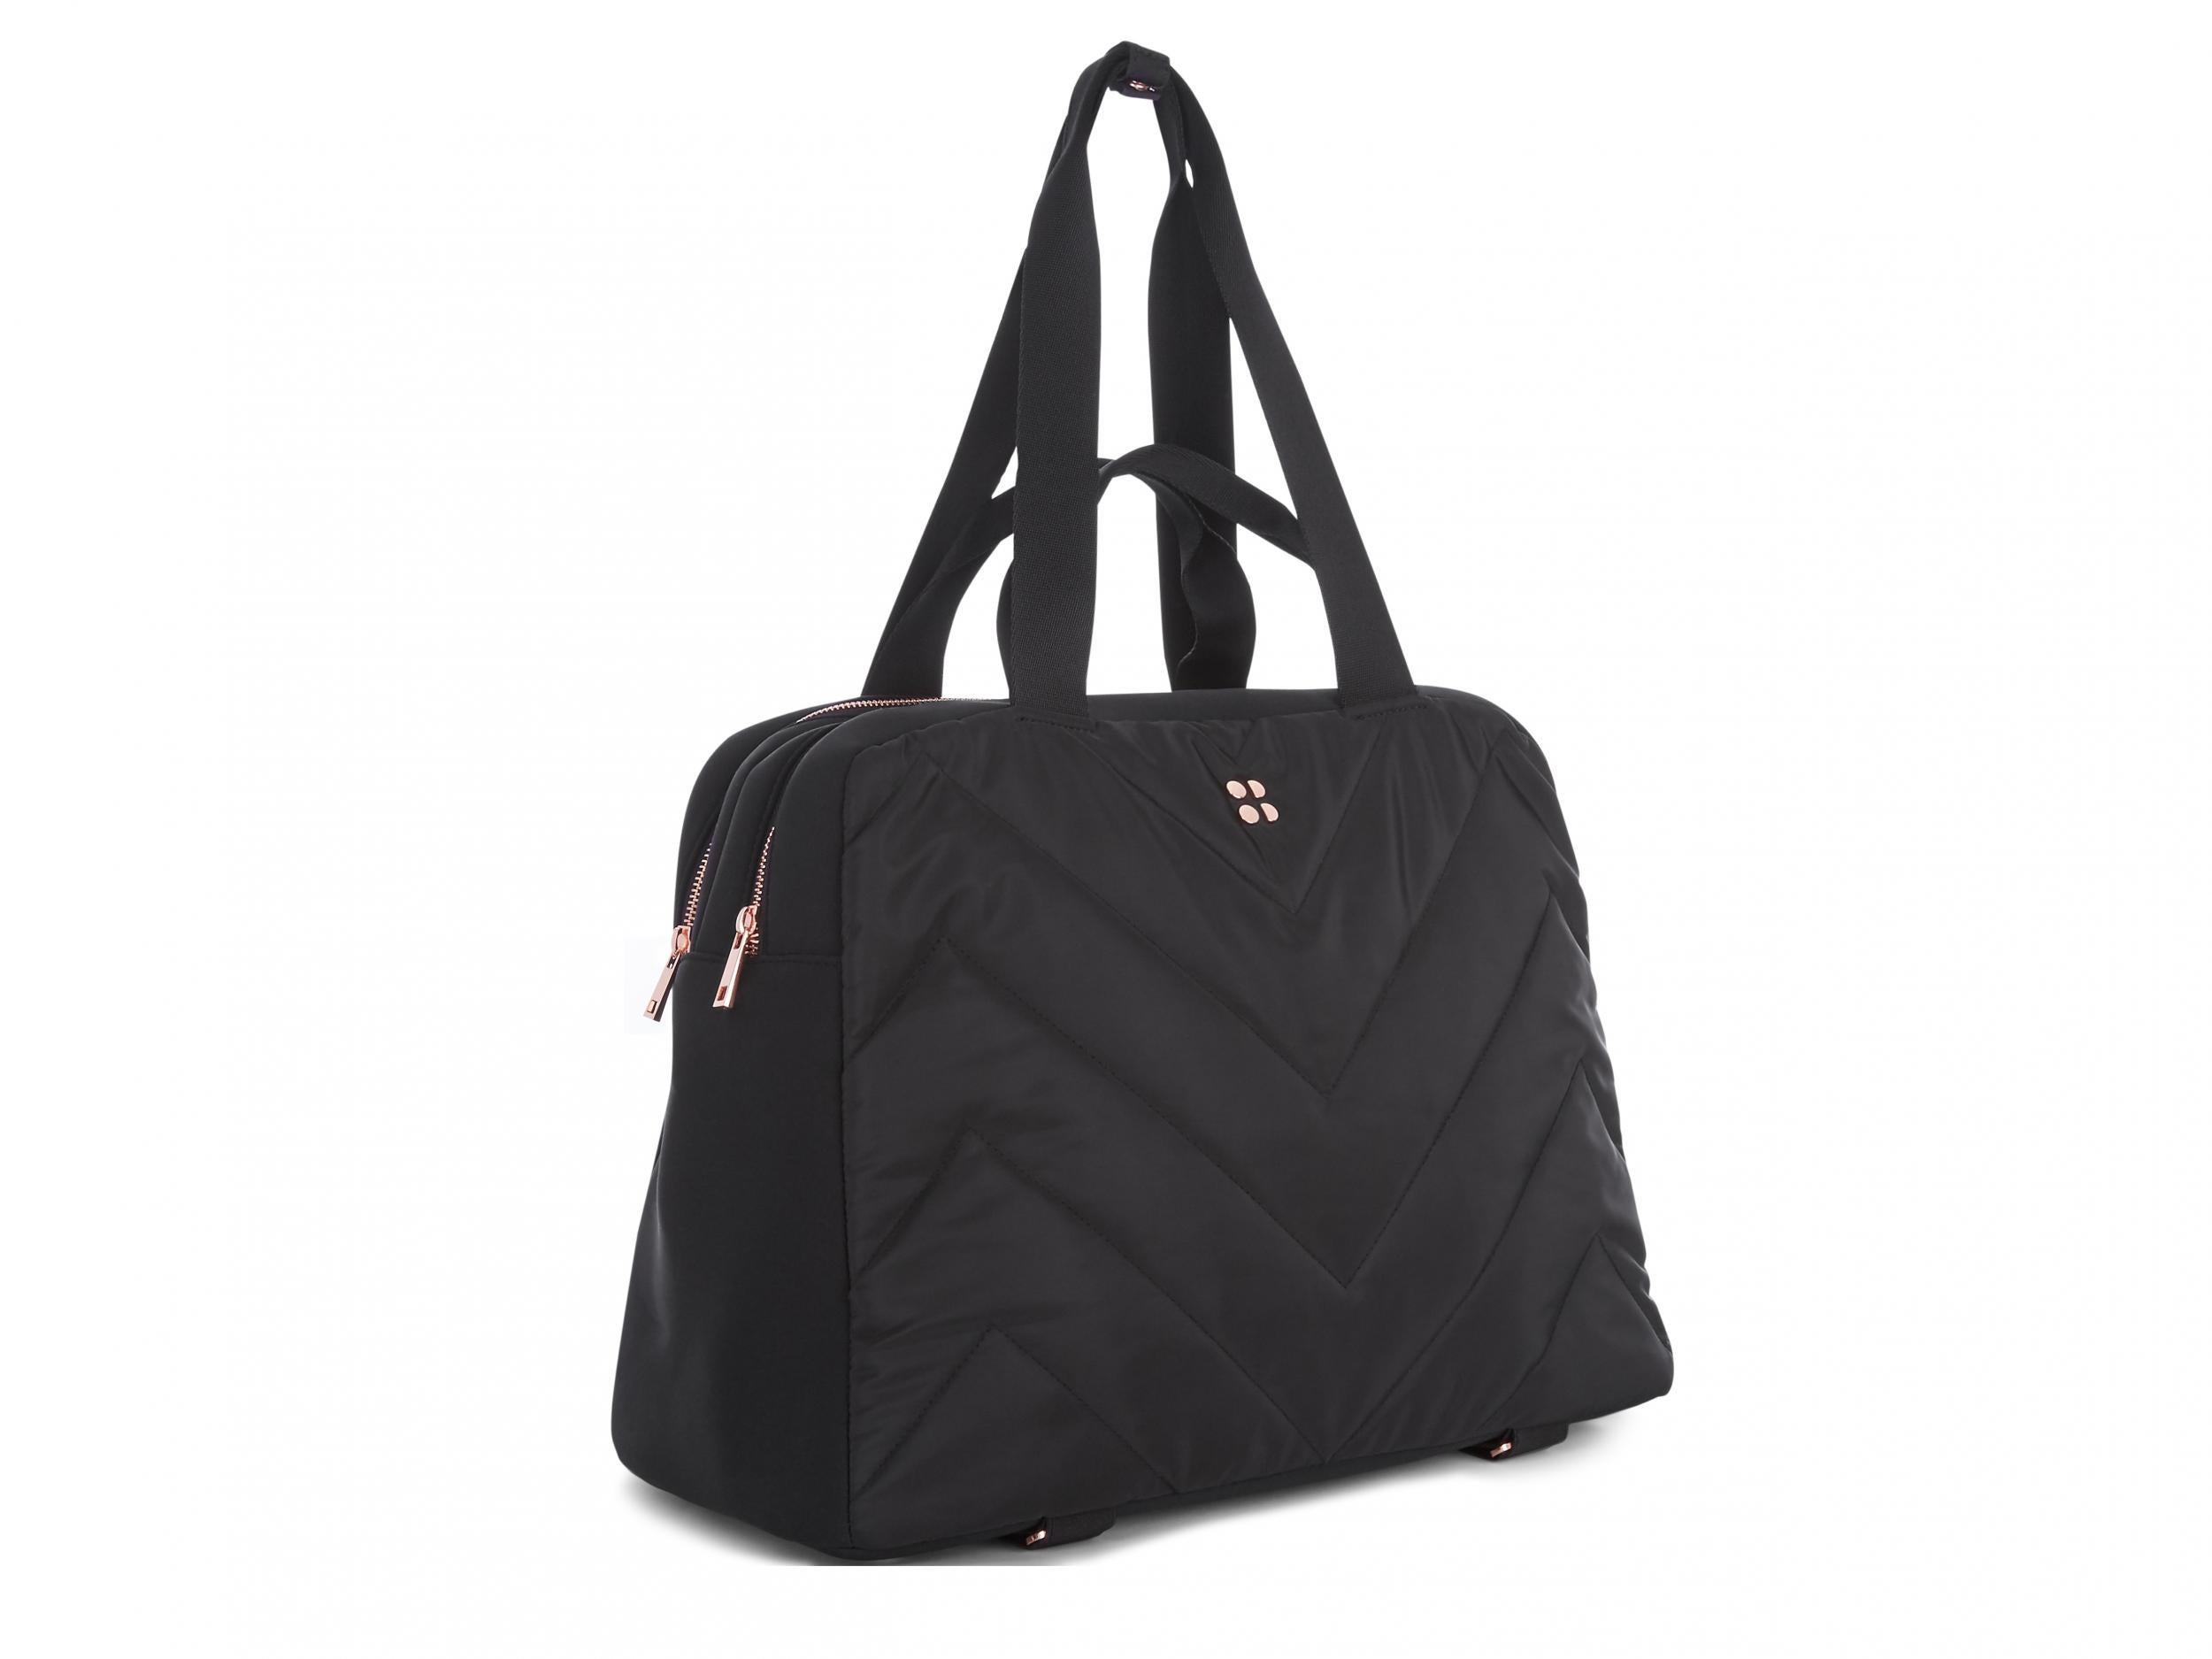 11 best gym bags for women   The Independent ef78d65049